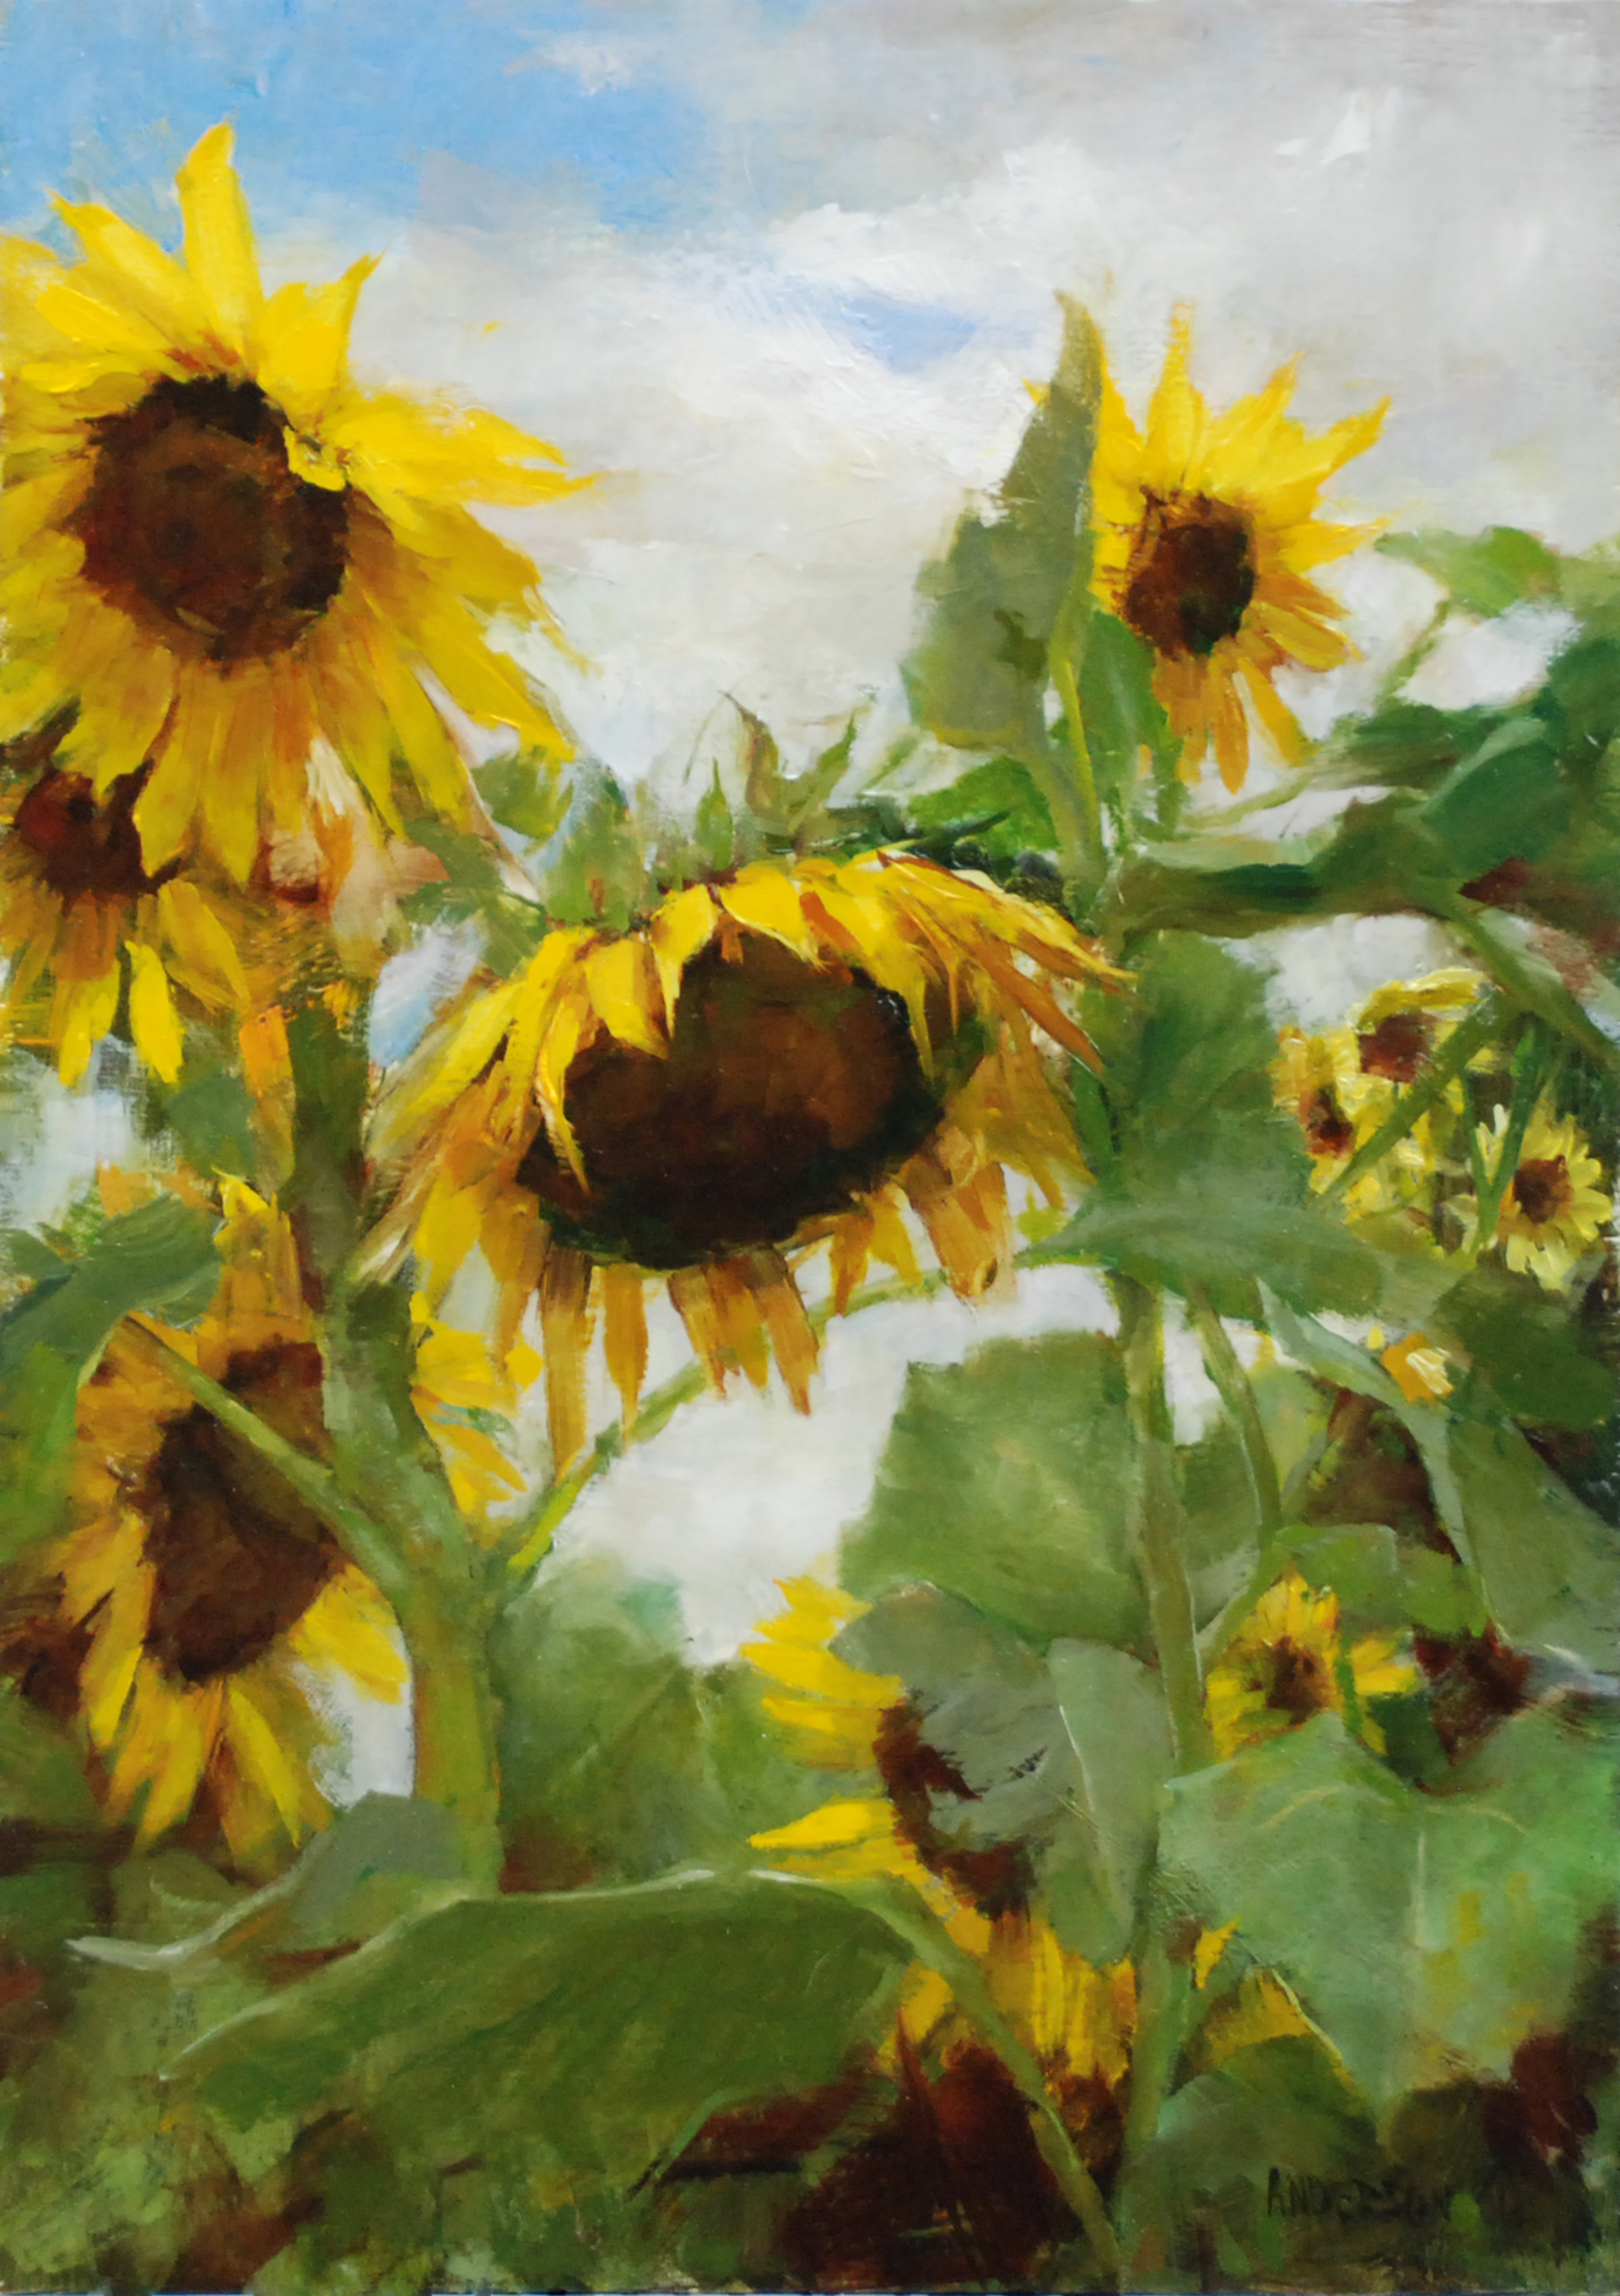 Blue Skies and Sunflowers by Kathy Anderson